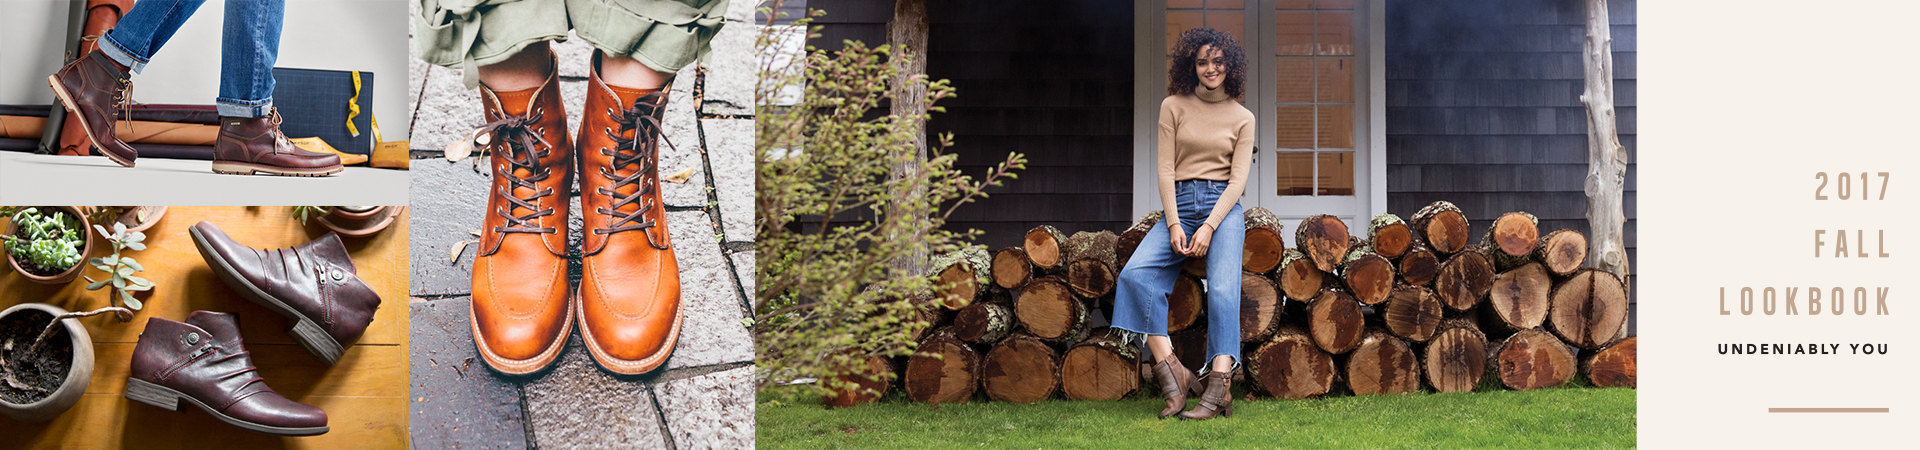 Tryptych of woman's shoes surrounded by succulent plants and fashion design equipment, close up of brown leather boots on a brick path, and a young woman leaning against a pile of logs outside a rustic-style house.